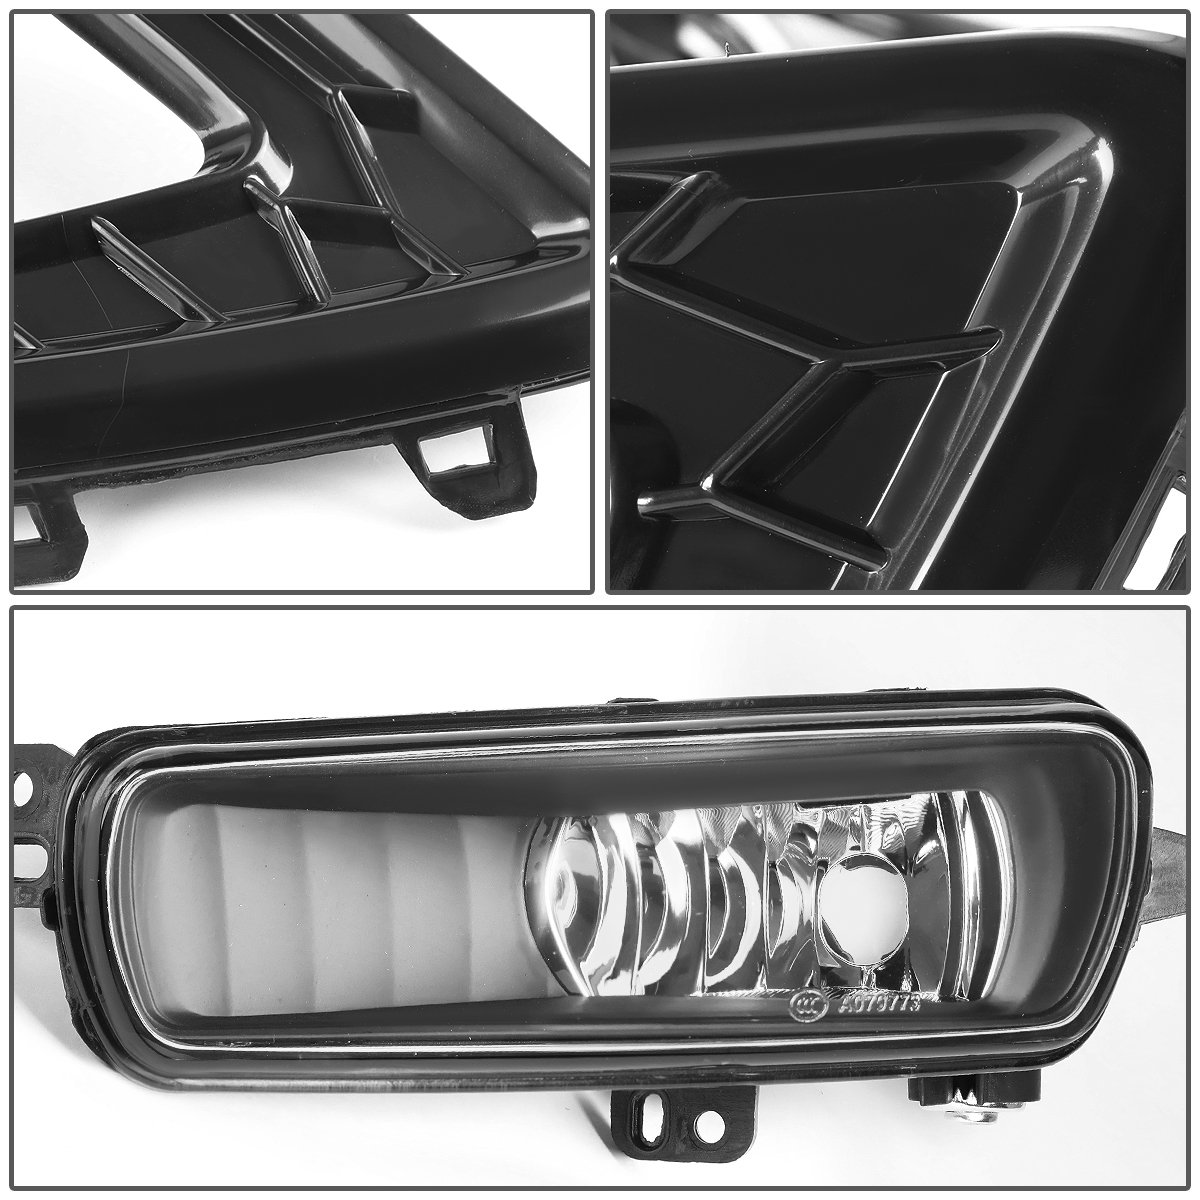 Amazon.com: For Ford Focus Pair of LED DRL Fog Lights + Build-in Turn  Signal+ Wiring+ Bezel (Black Bezel Clear Lens): Automotive